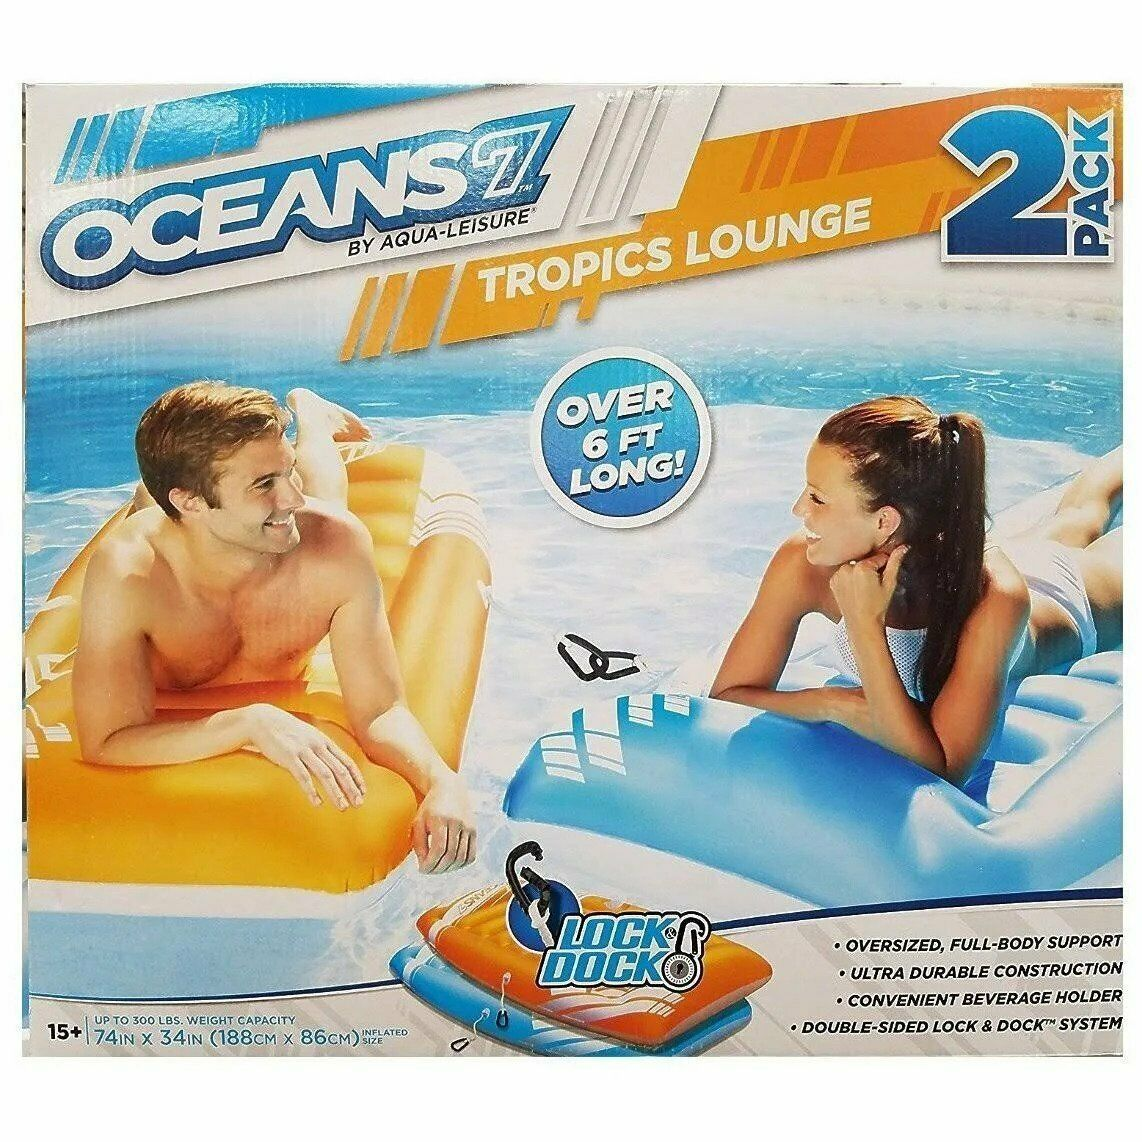 Oceans 7 By Aqua-Leisure Tropics Lounge 2 Pack 74in x 34in Supports up to 500lbs